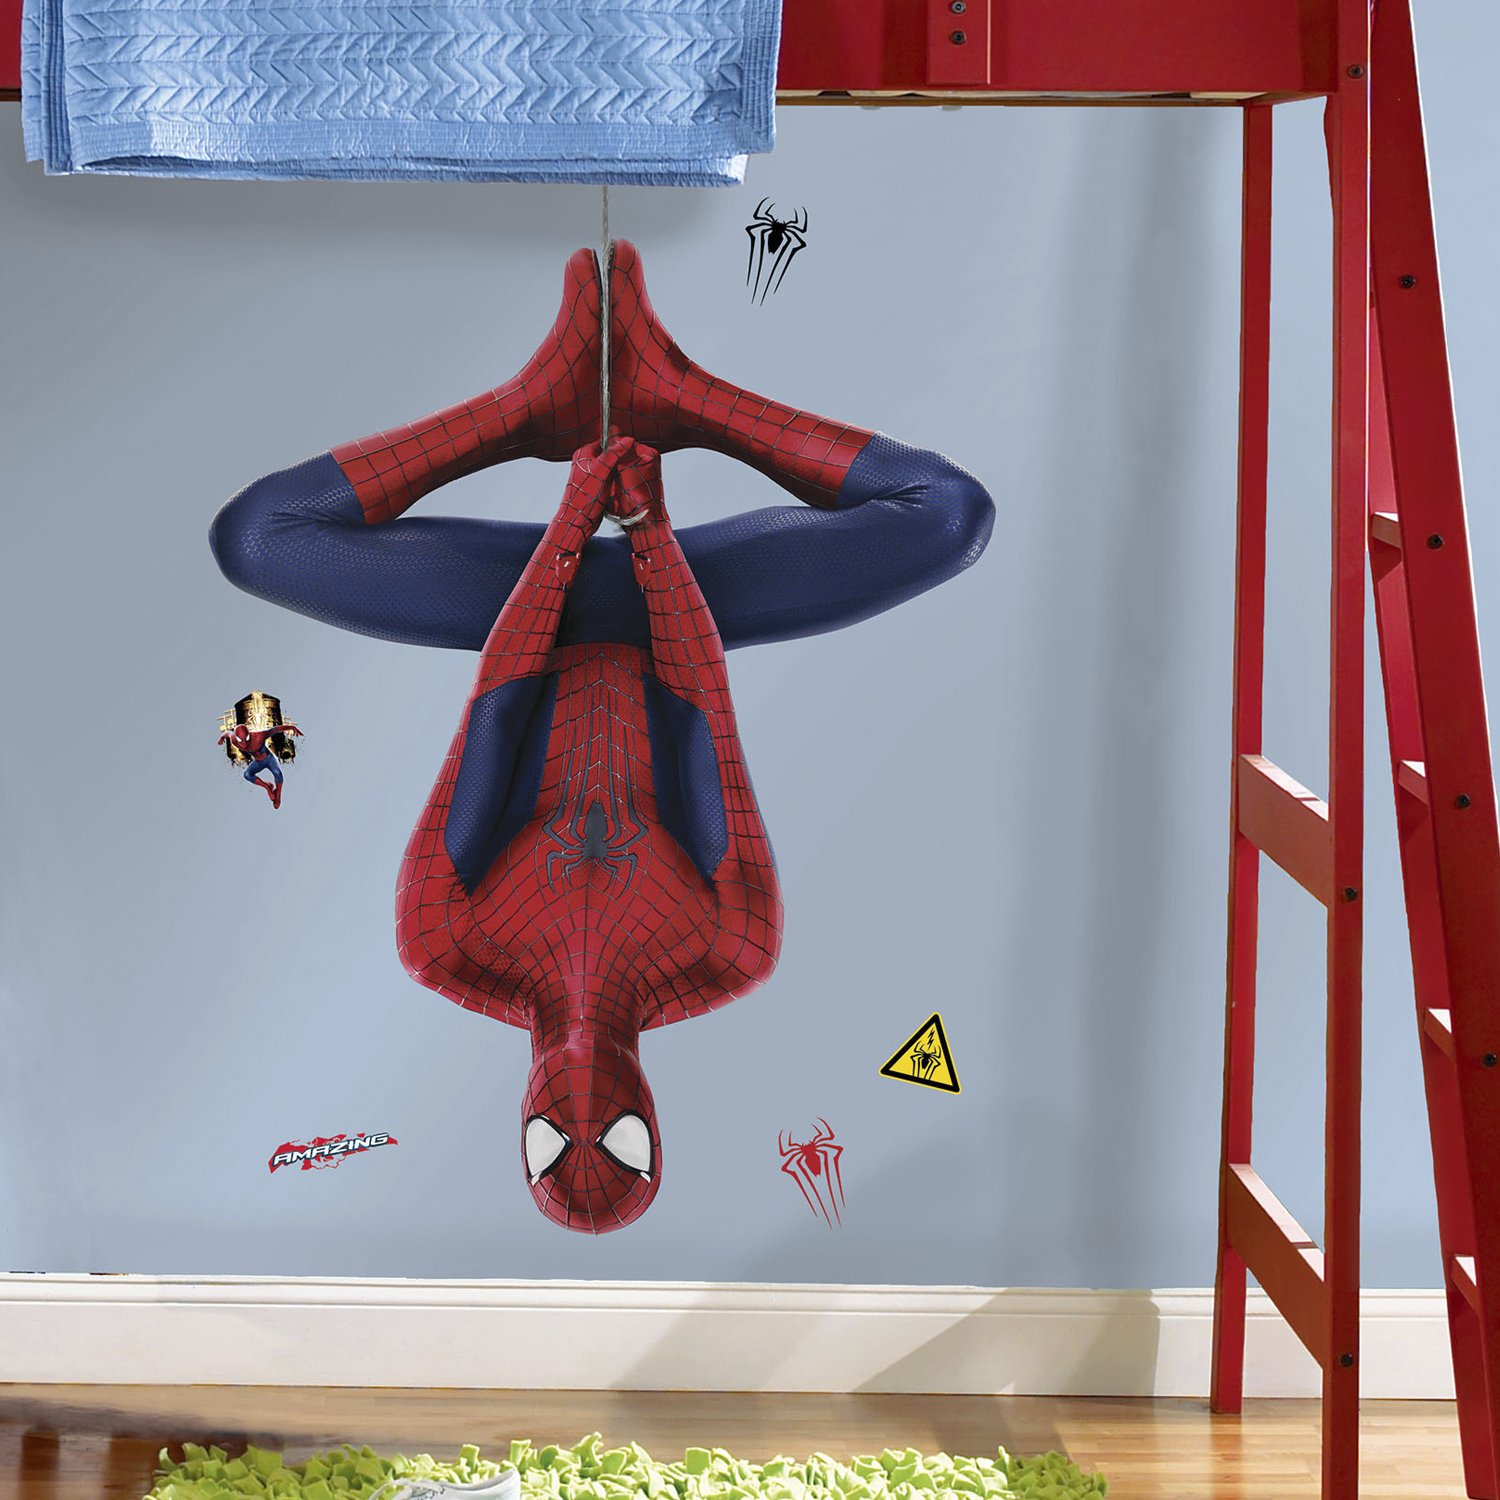 he Amazing Spider-Man 2 Web Slinging Peel and Stick Giant Wall Decal